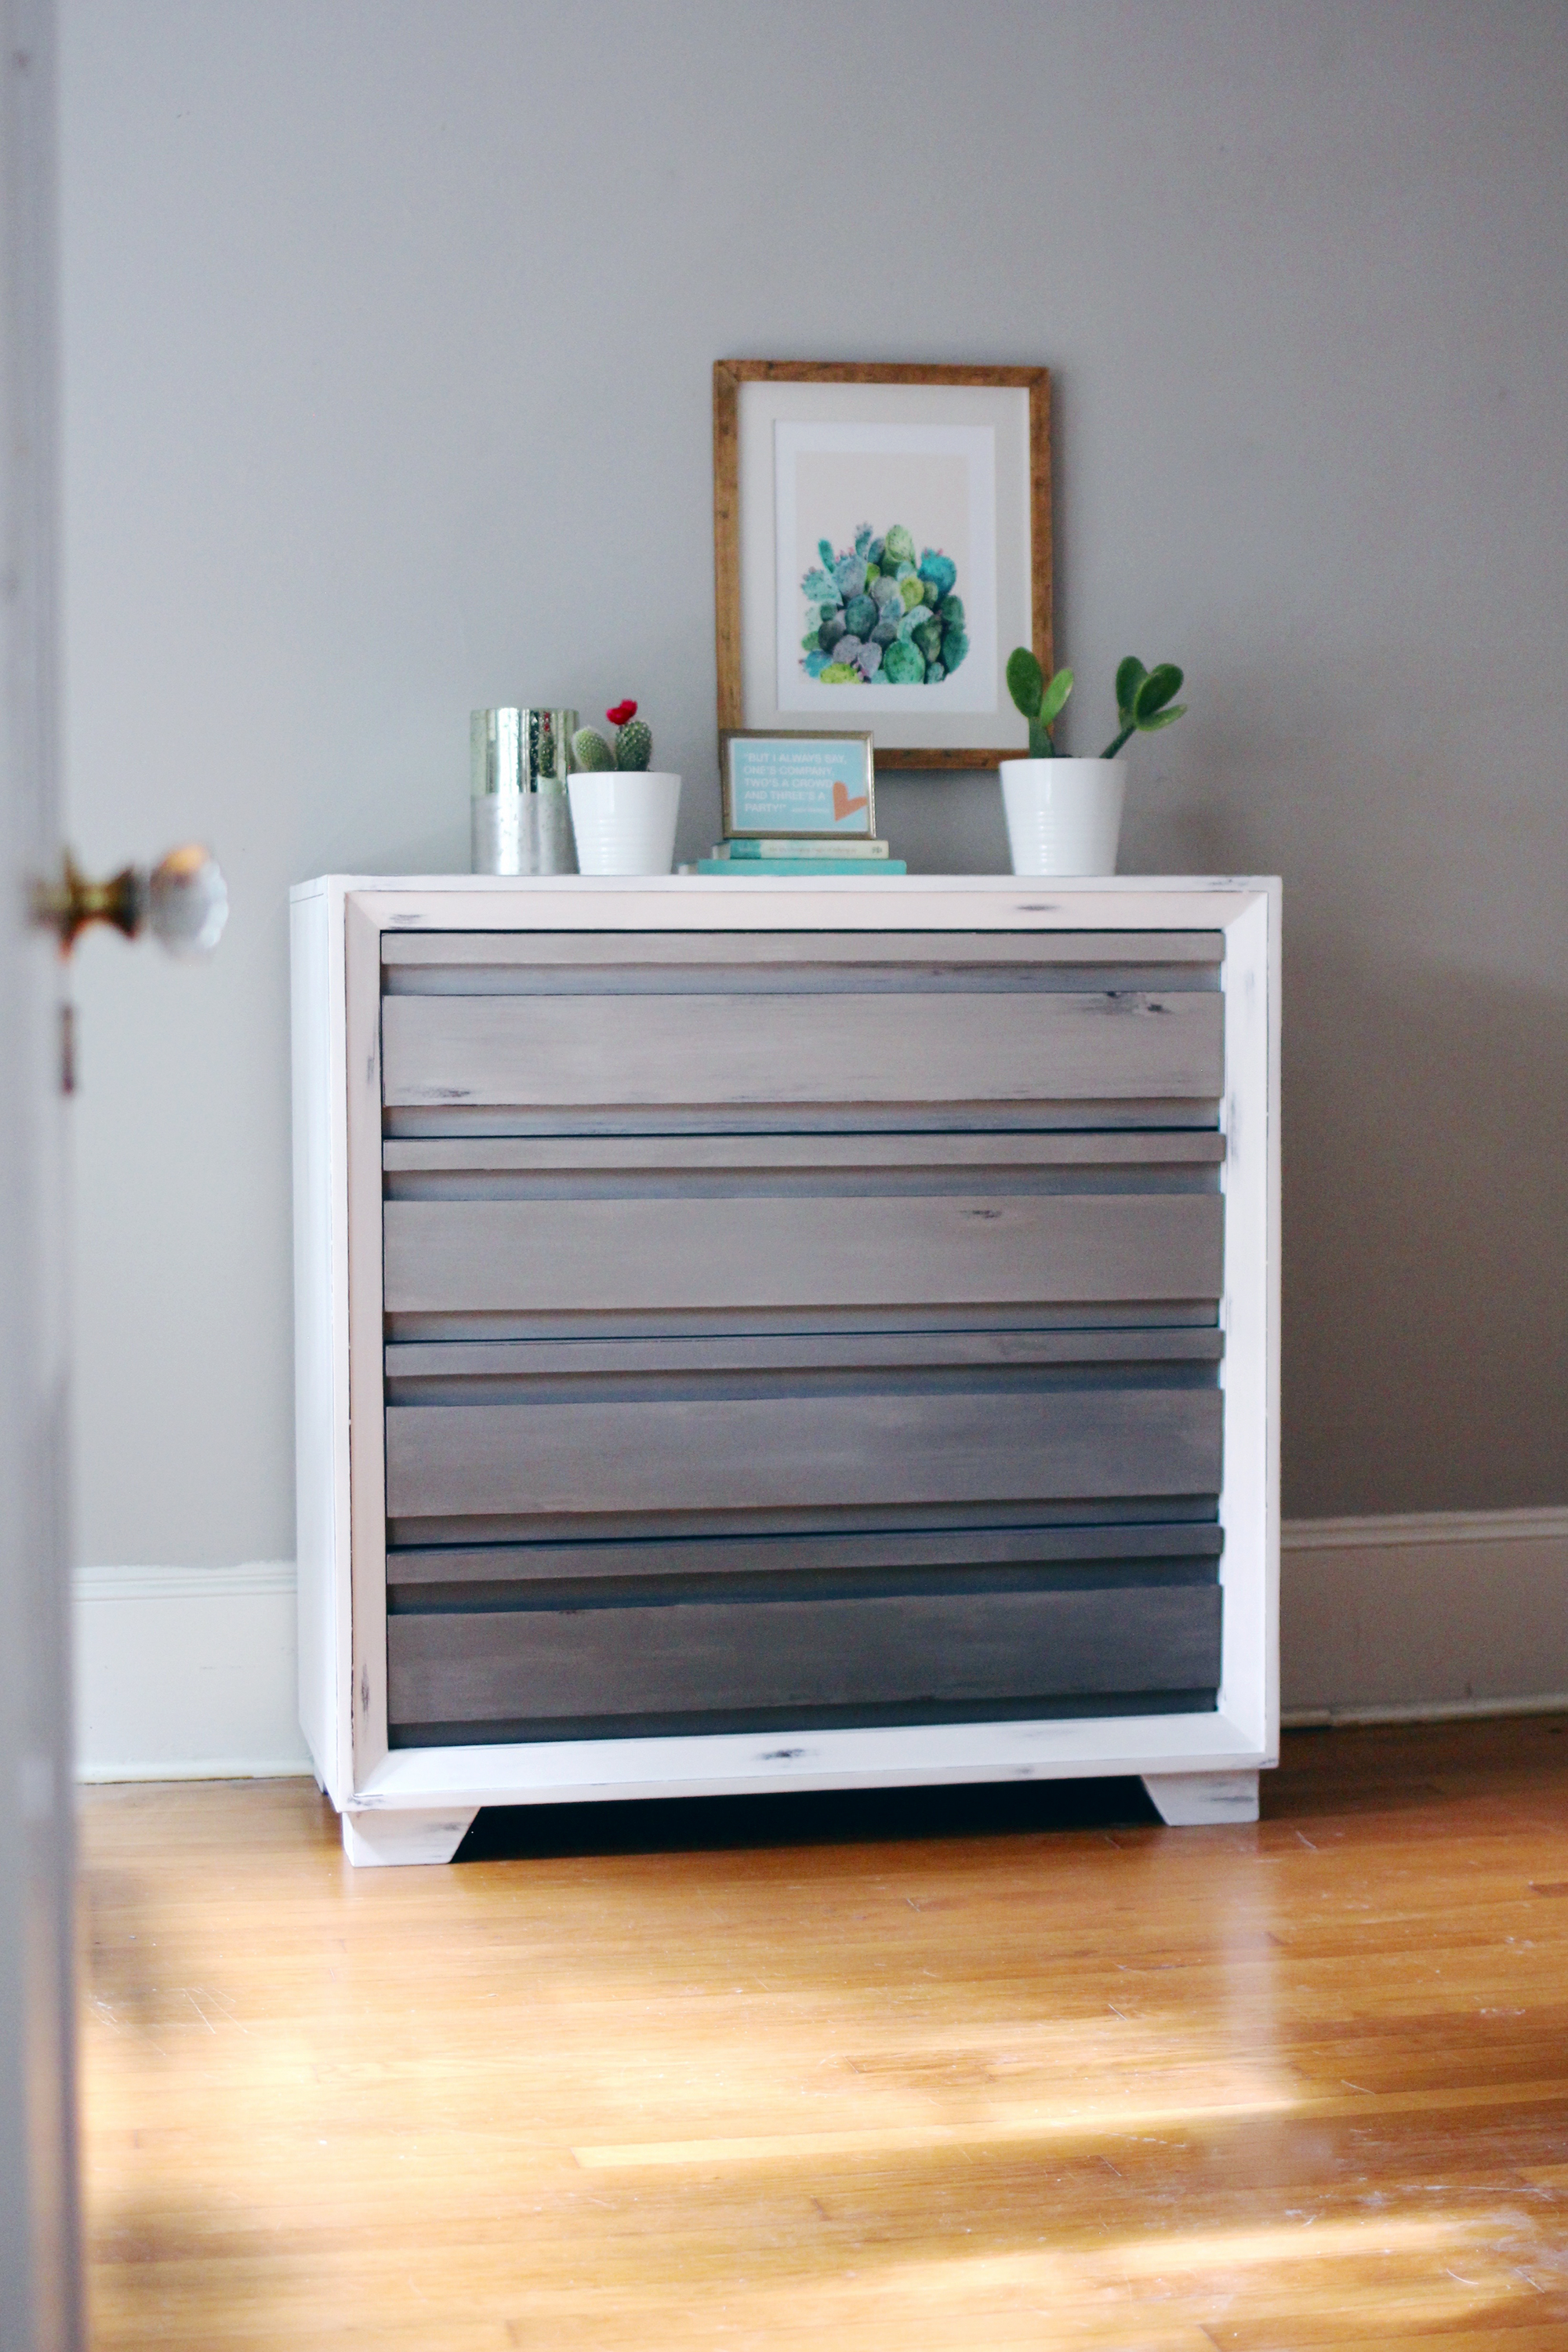 jo-torrijos-a-simpler-design-atlanta-painted-furniture-annie-sloan-gray-white-ombre-dresser-3.jpg